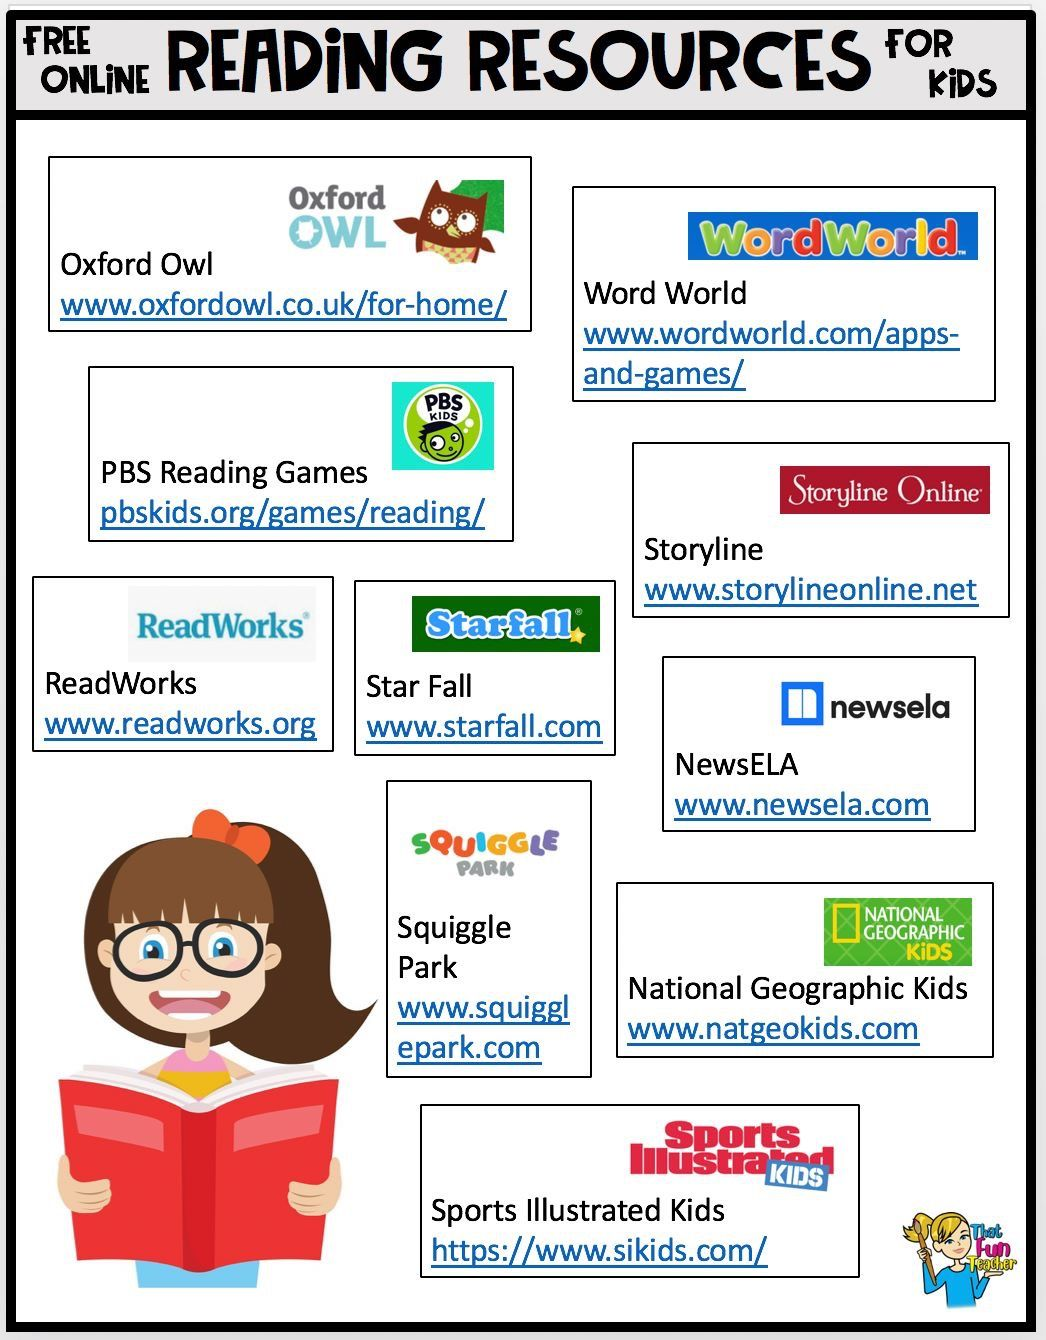 Pin By Courtney Ehringer On Education Digital Learning Classroom Learning Websites For Kids Learning Websites What are some good reading websites